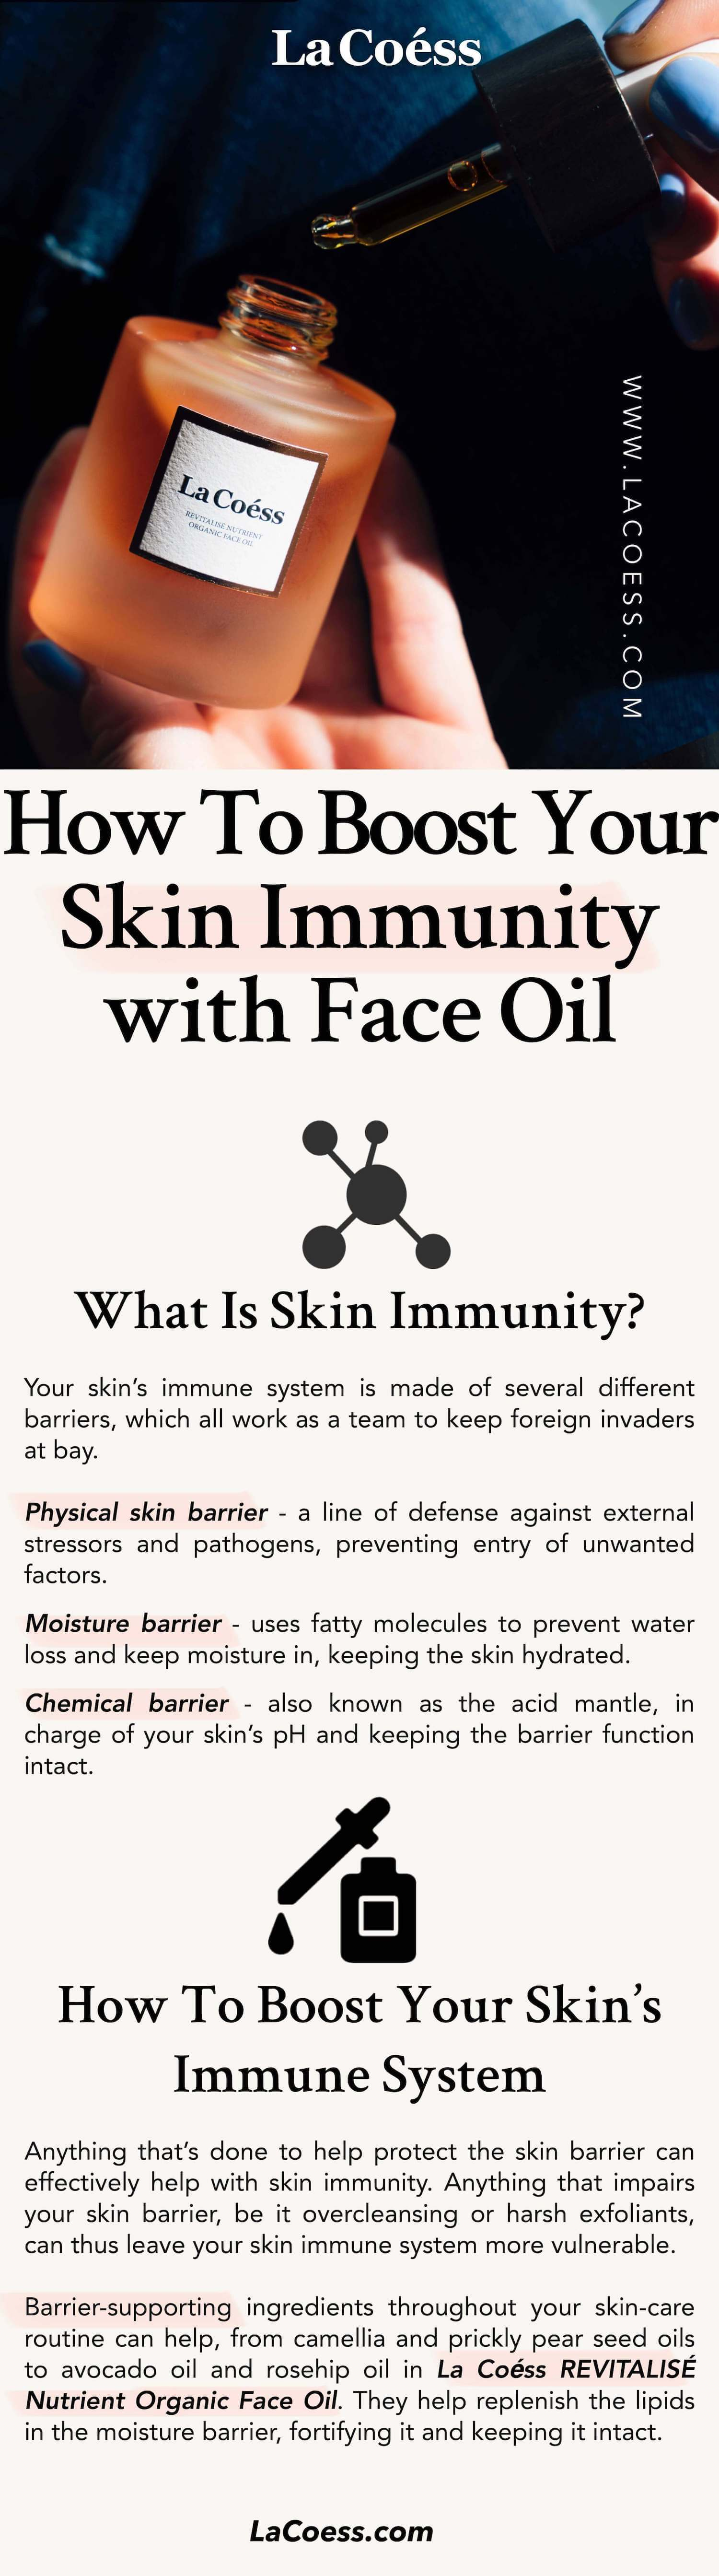 How to Boost Your Skin Immunity With Face Oil